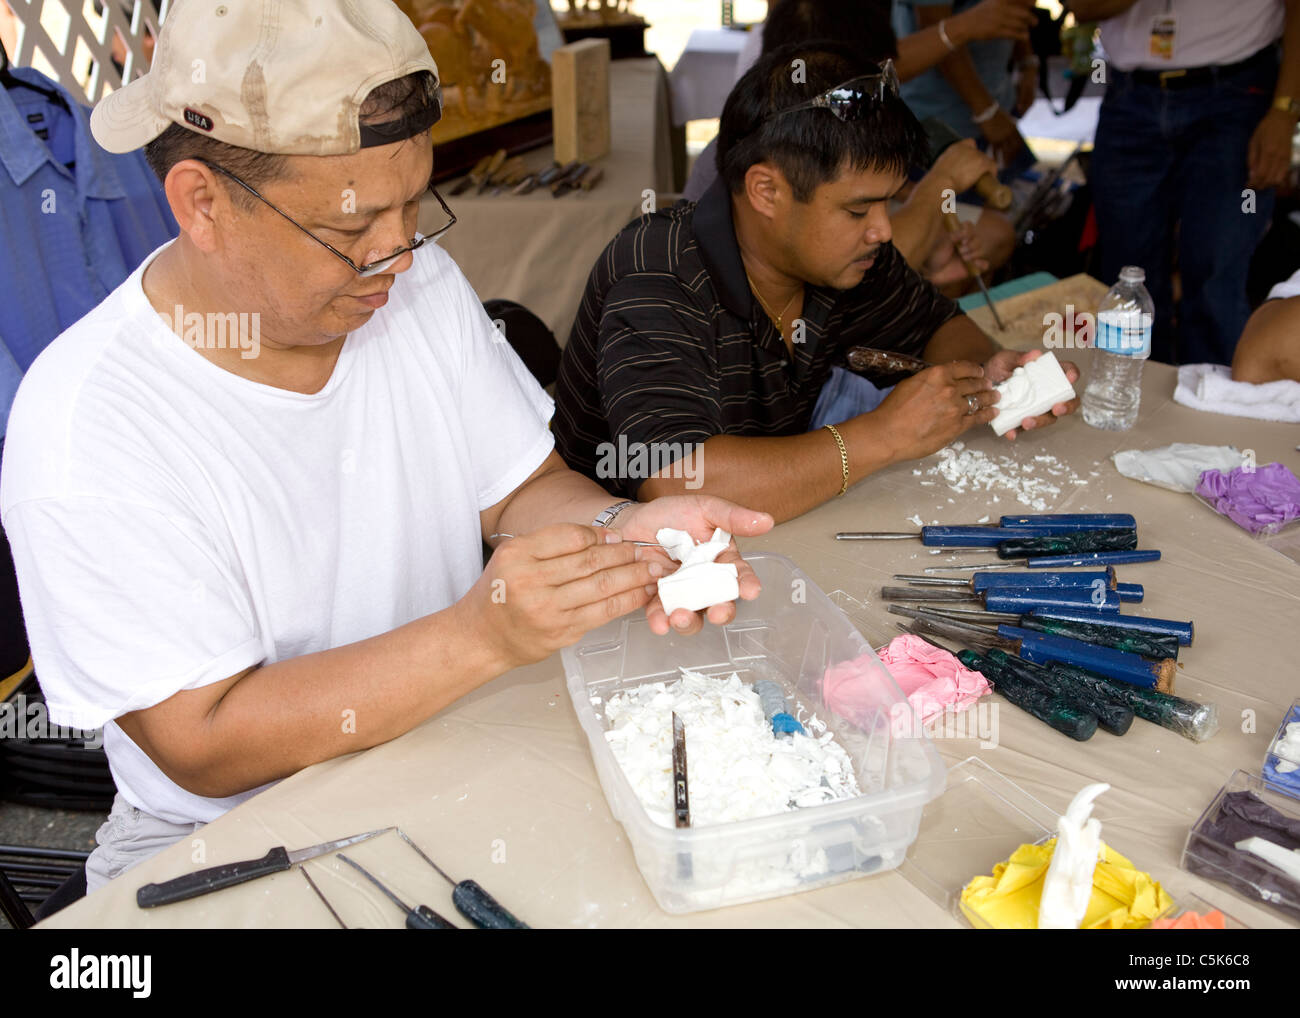 An Asian man carving a small figure from soap bar - Stock Image